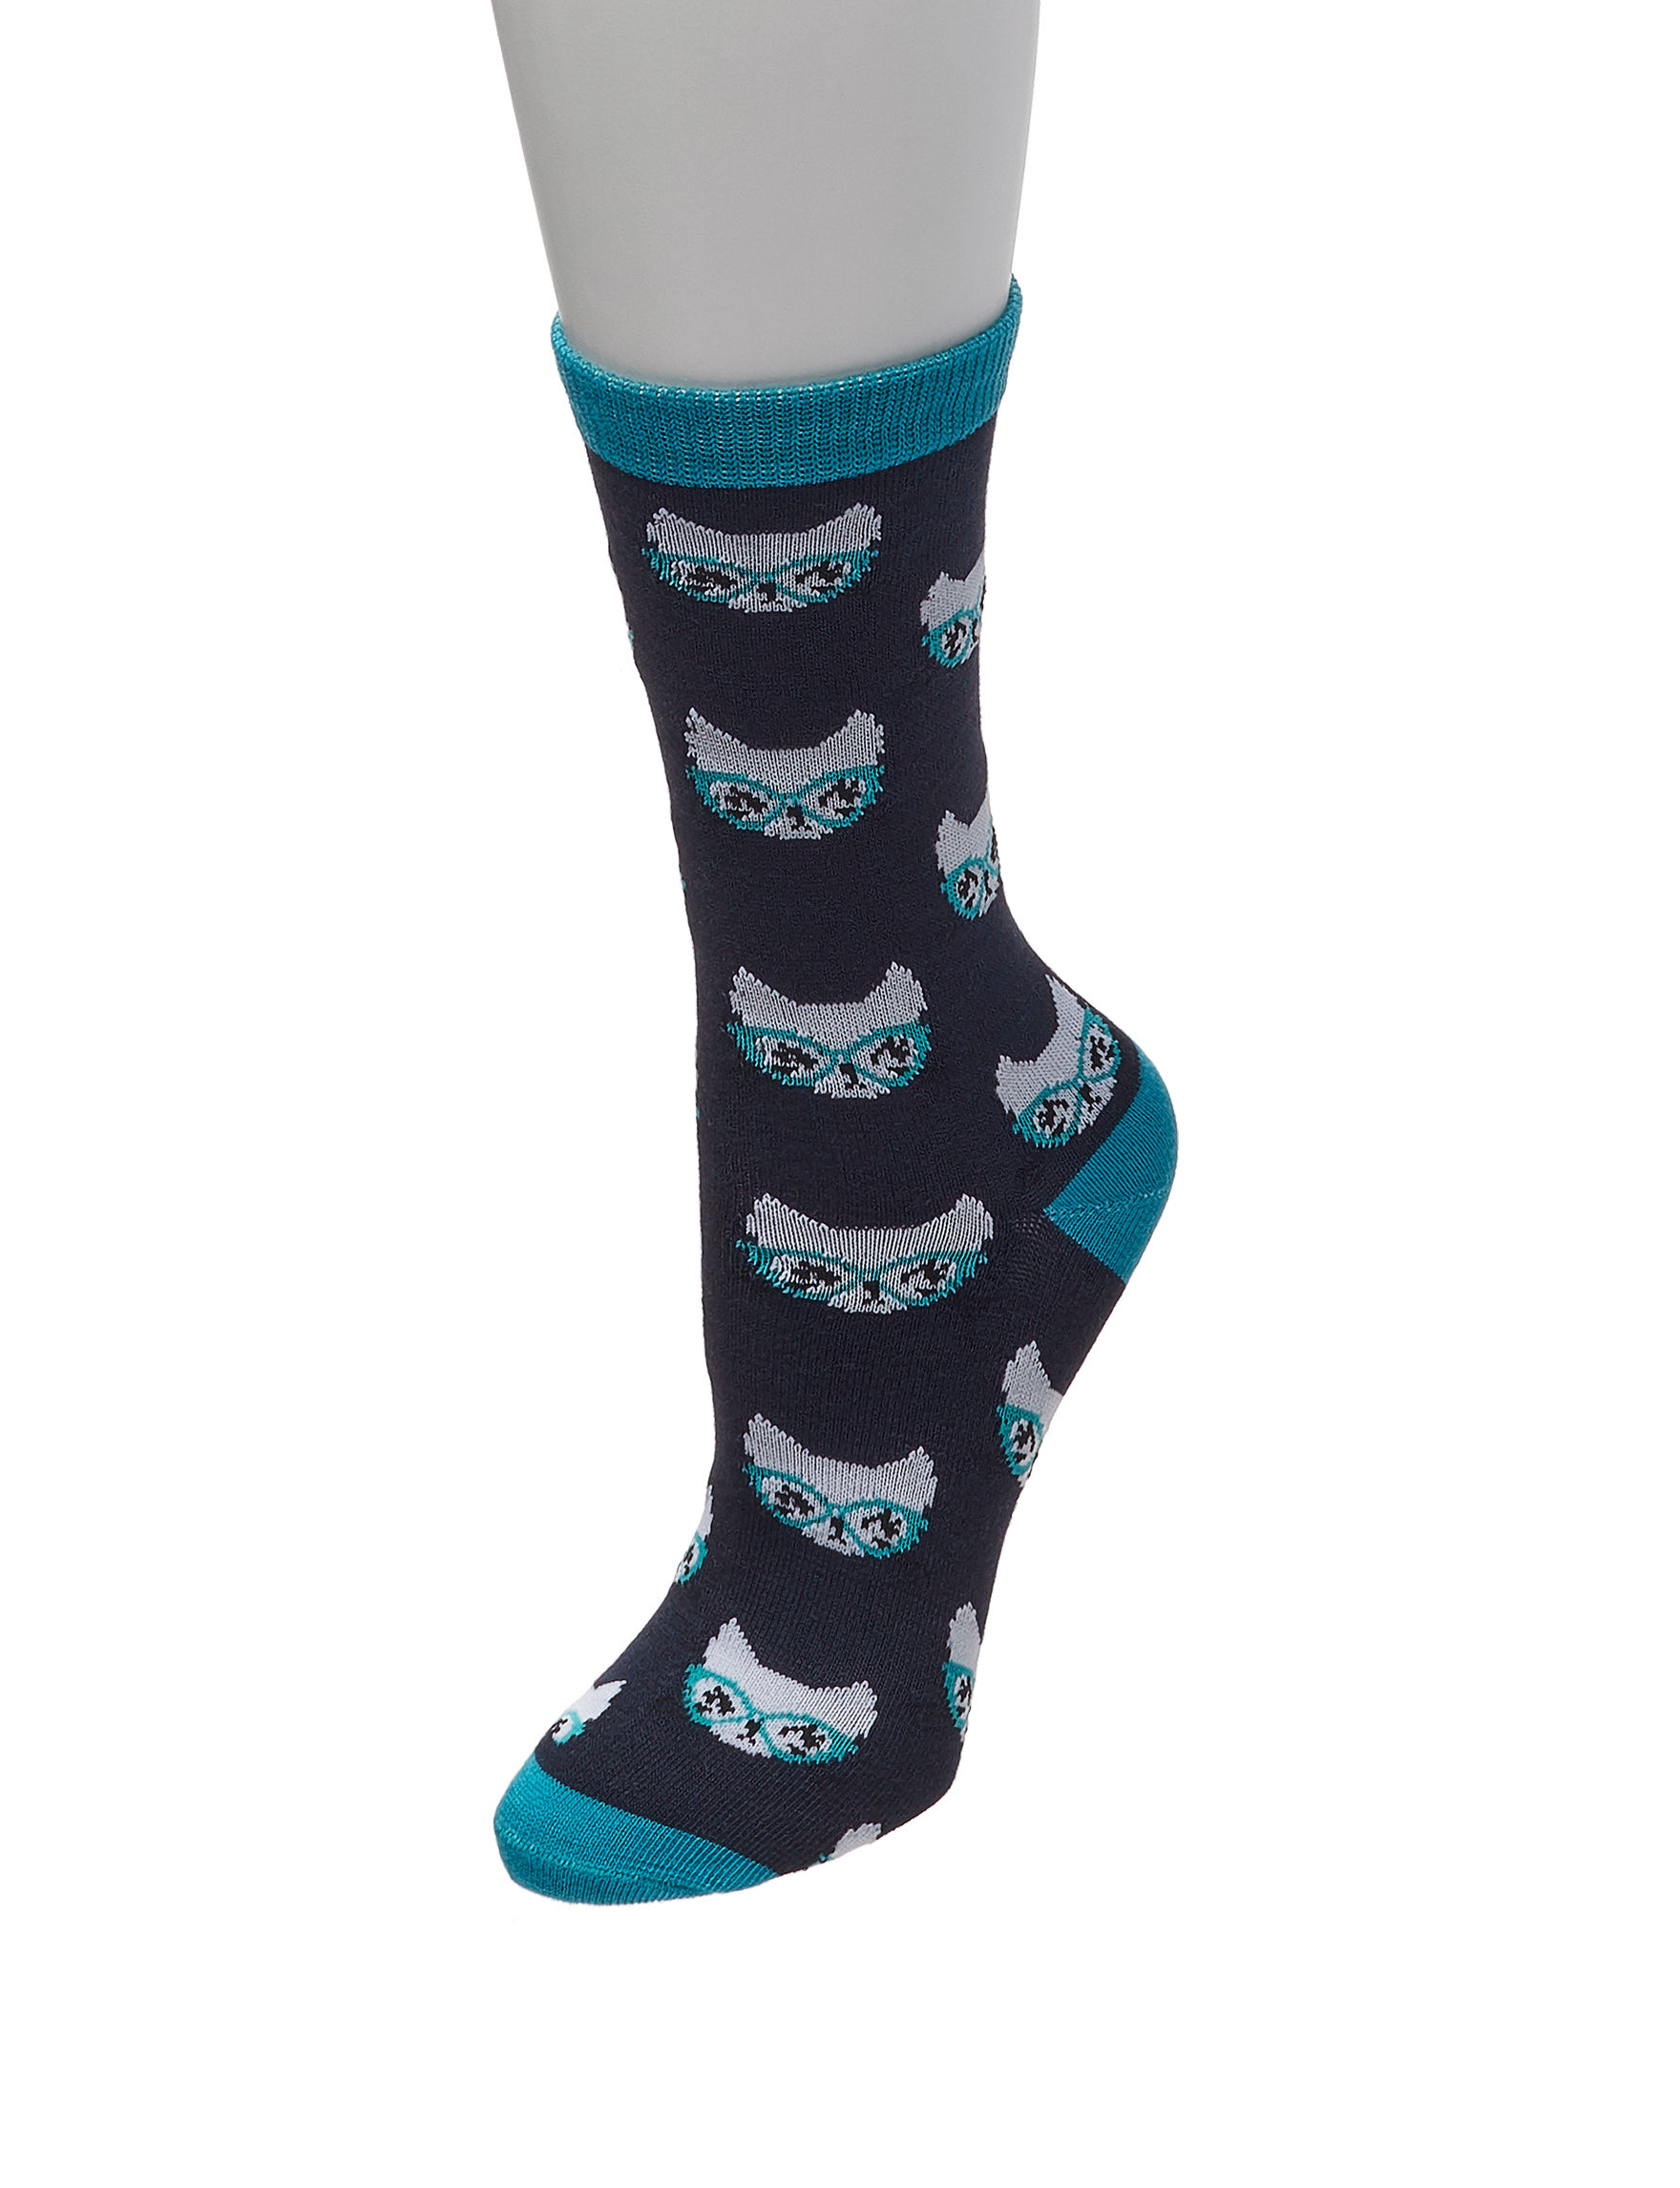 Sox & Co Navy Multi Socks